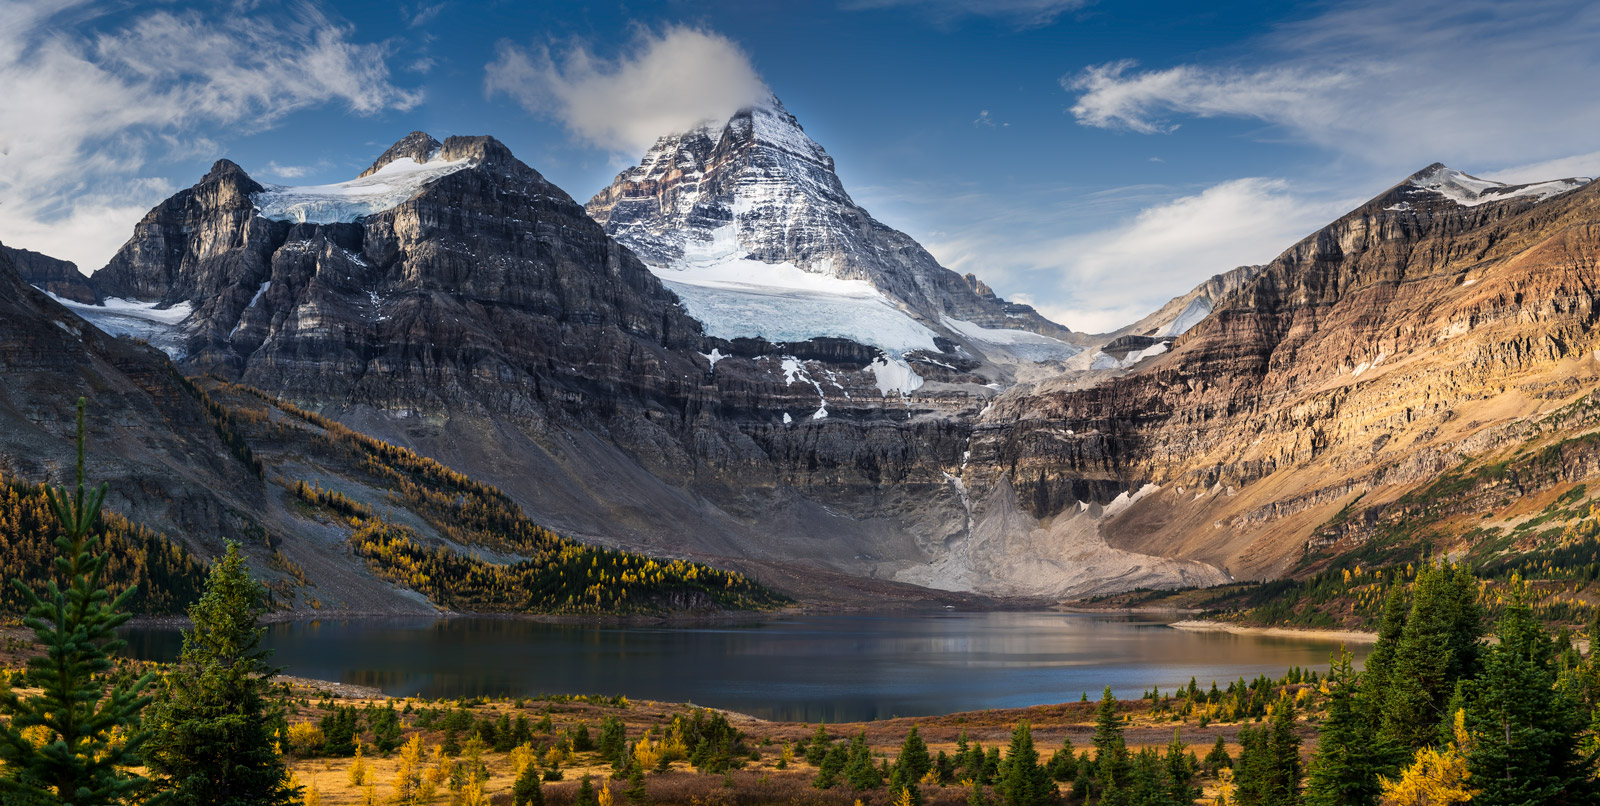 Magnificent Morning Mount Assiniboine Alberta Canada